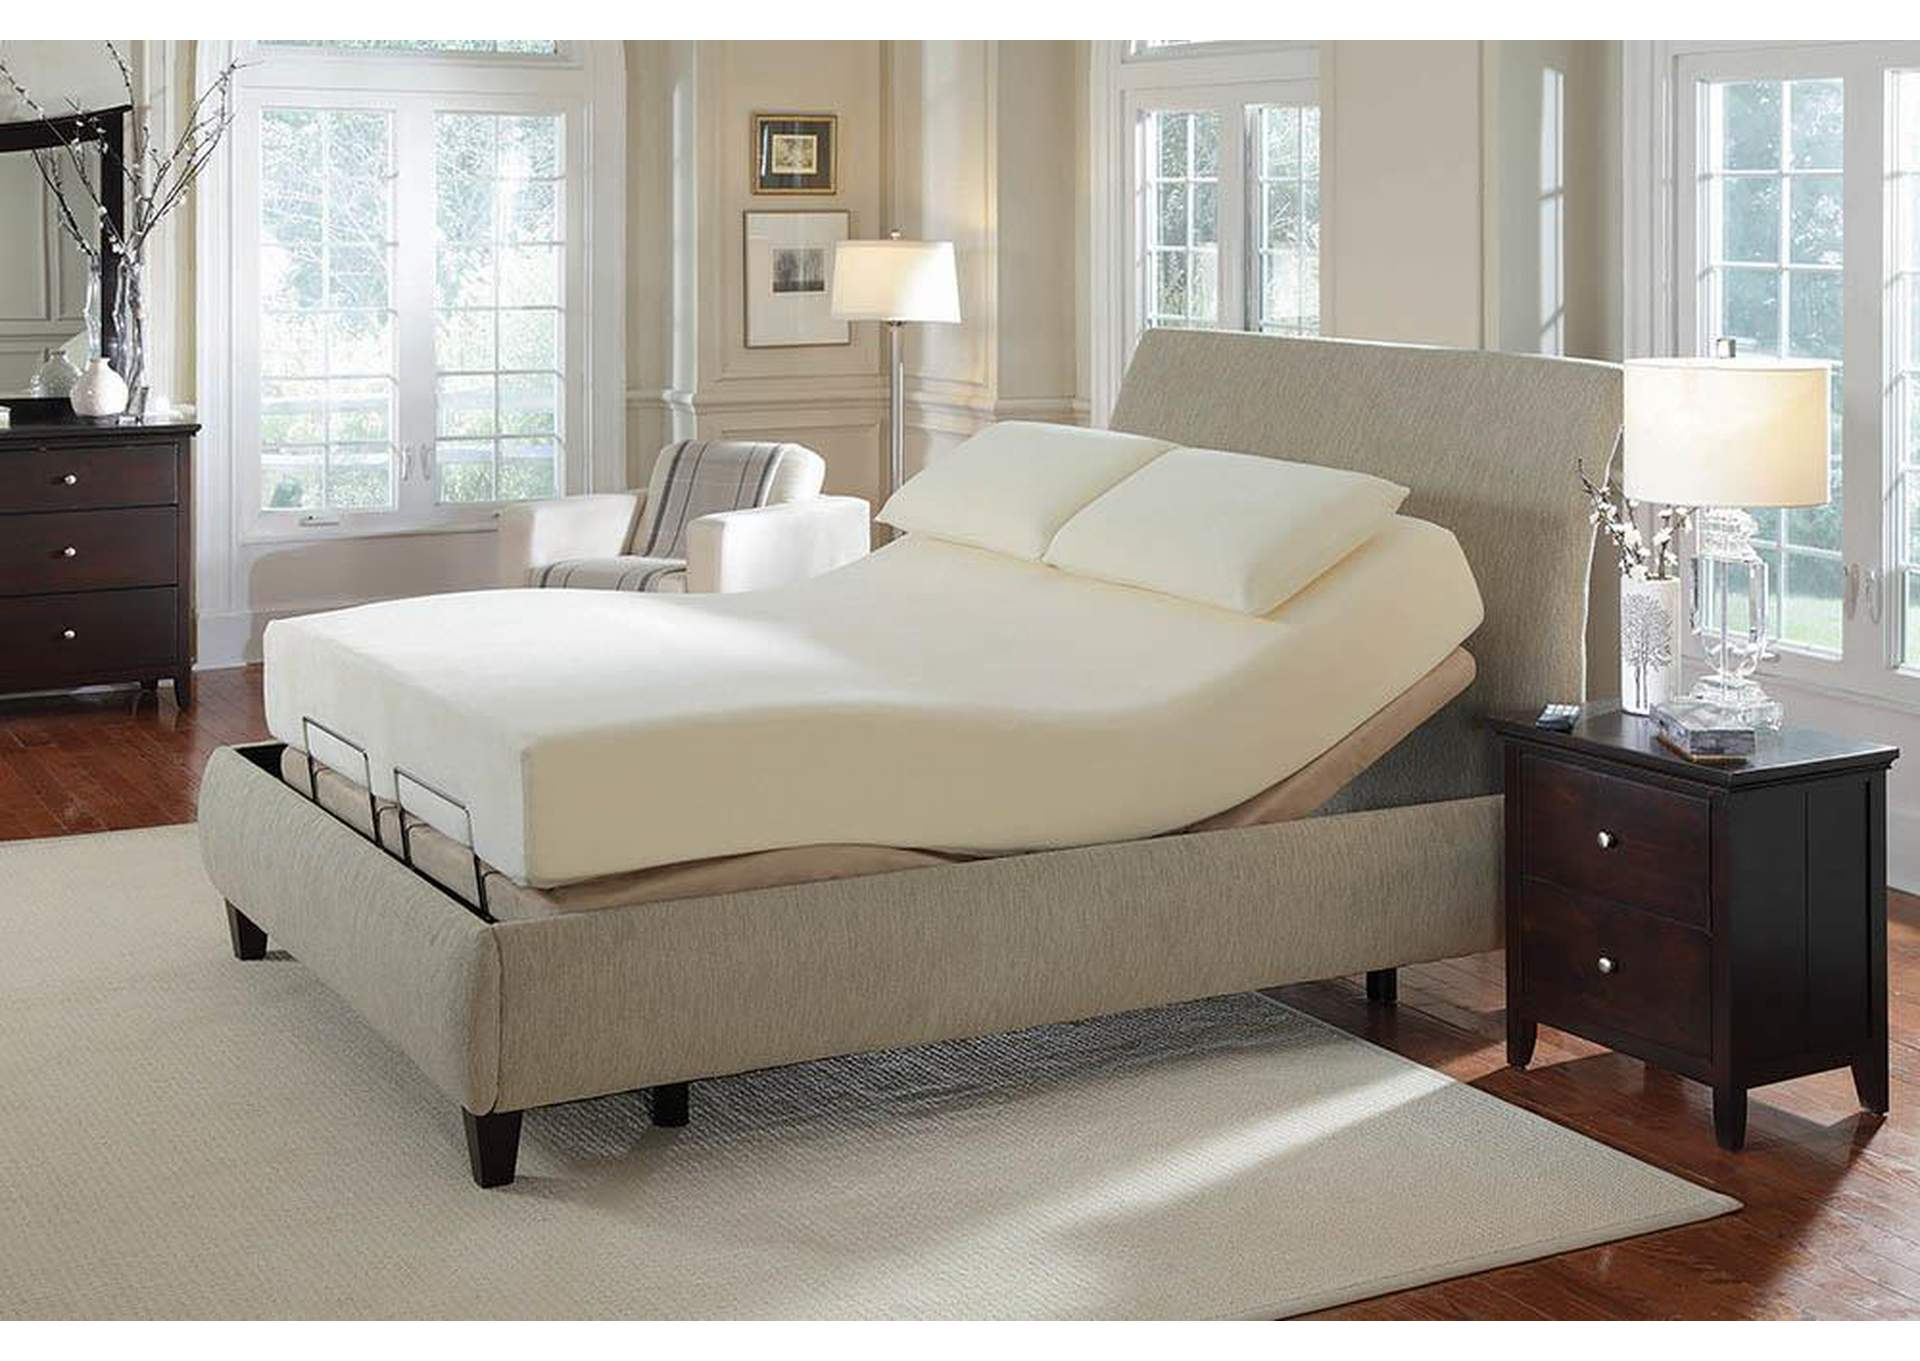 Cherry Adjustable California King Bed Base (Mattress And Bedframe Not  Included),Coaster Furniture